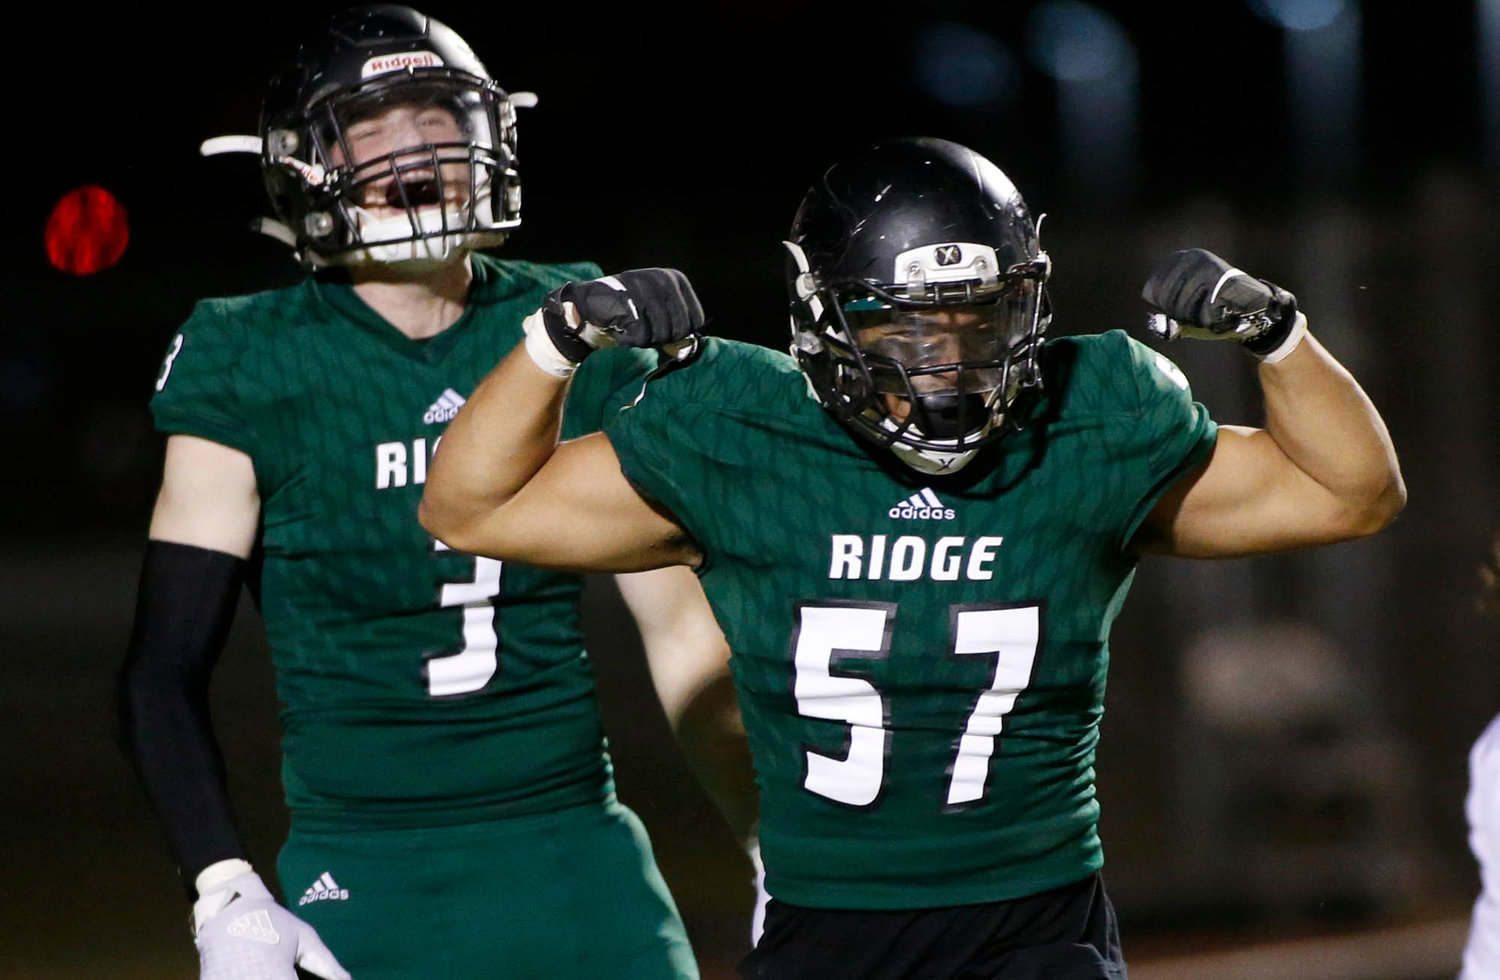 Mountain Ridge junior linebacker Derek Torres (57) flexes his muscle as he celebrates with teammate Jackson Rossi after a sack against Sandra Day O'Connor during the first half of their 6A football game on Friday, Nov. 1.